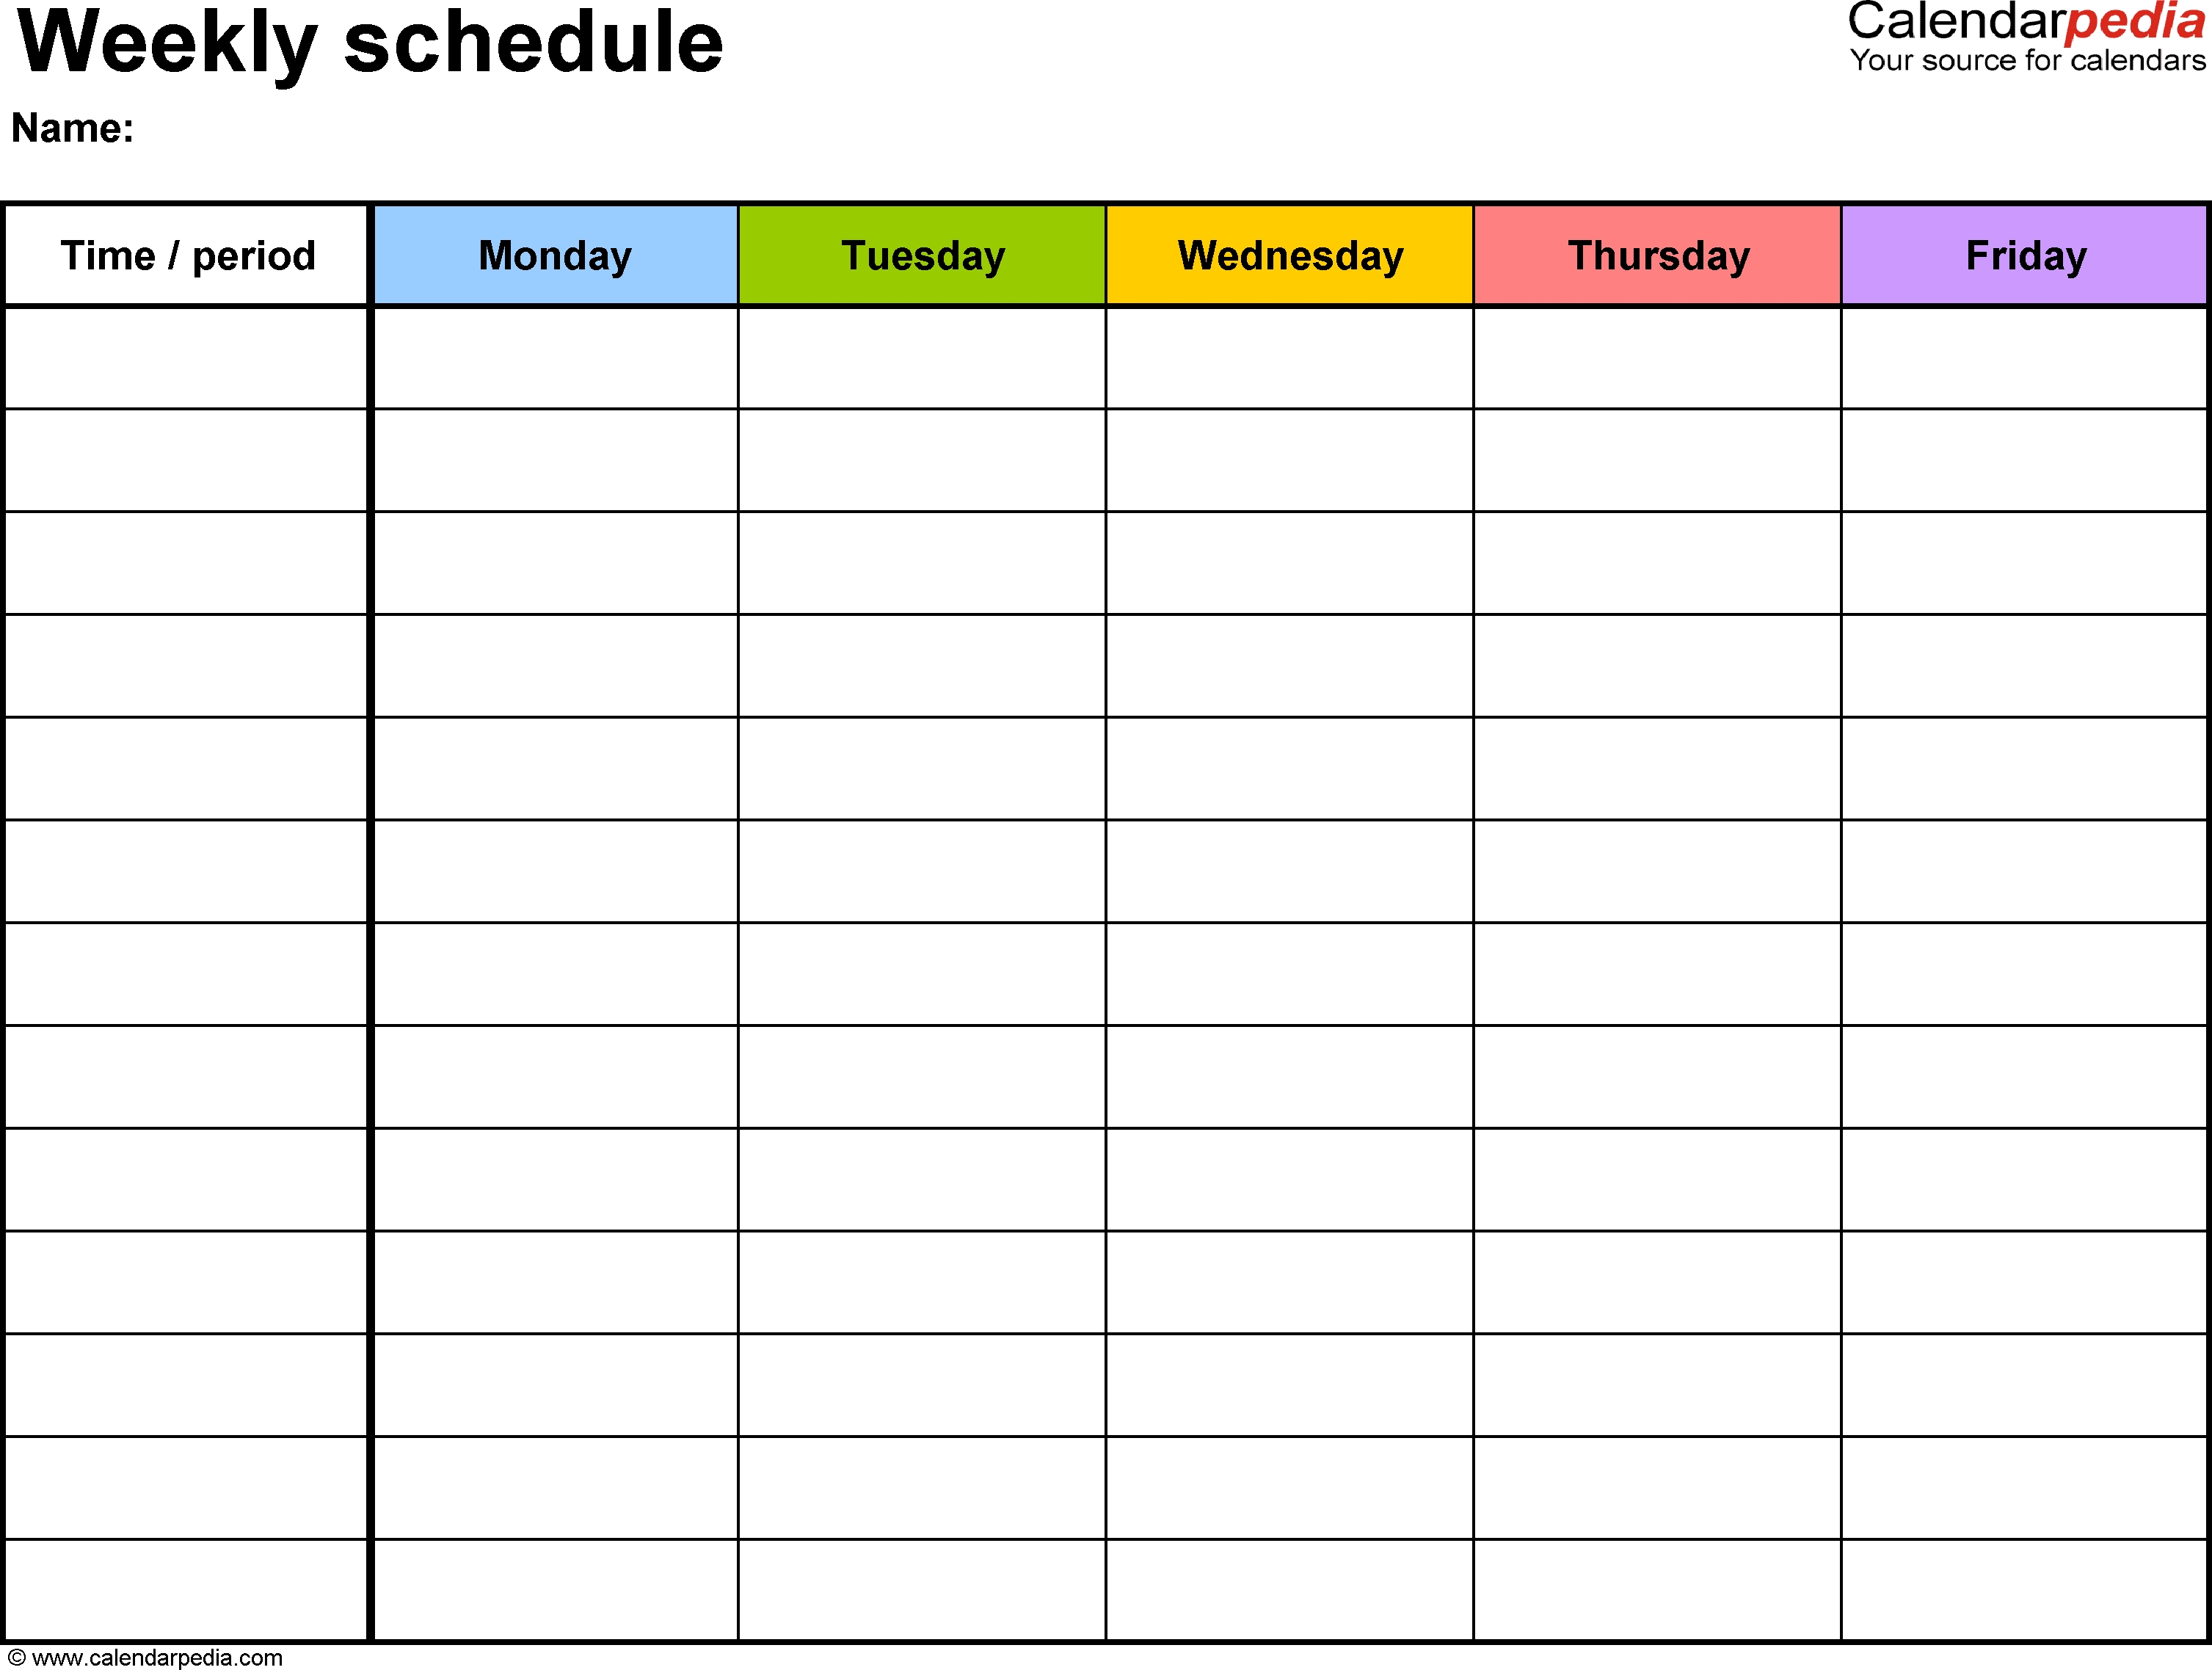 Free Weekly Schedule Templates For Word - 18 Templates Dashing Blank Calendar Monday To Friday